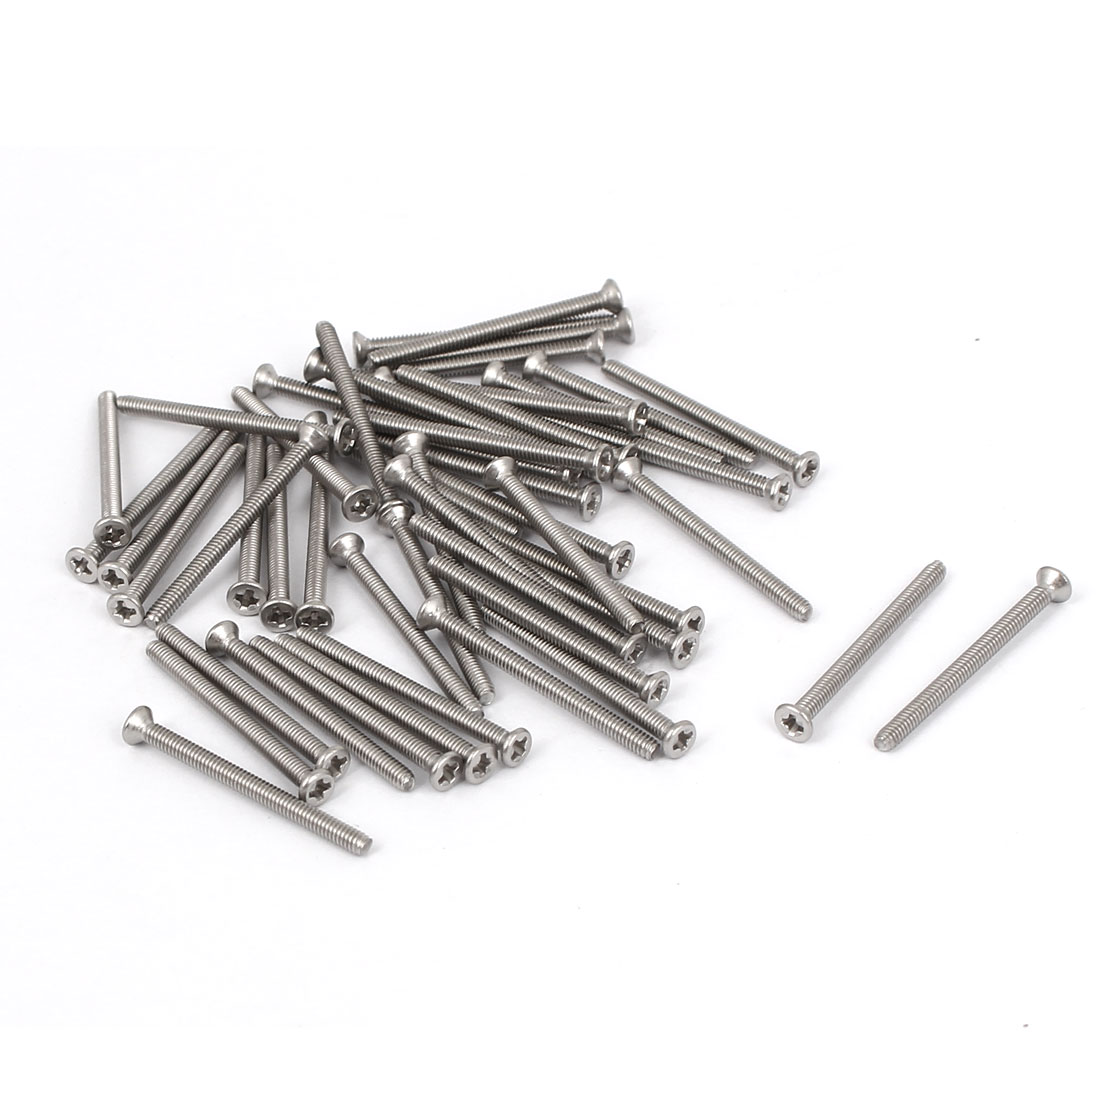 M2x25mm Stainless Steel Phillips Flat Countersunk Head Screws 50pcs